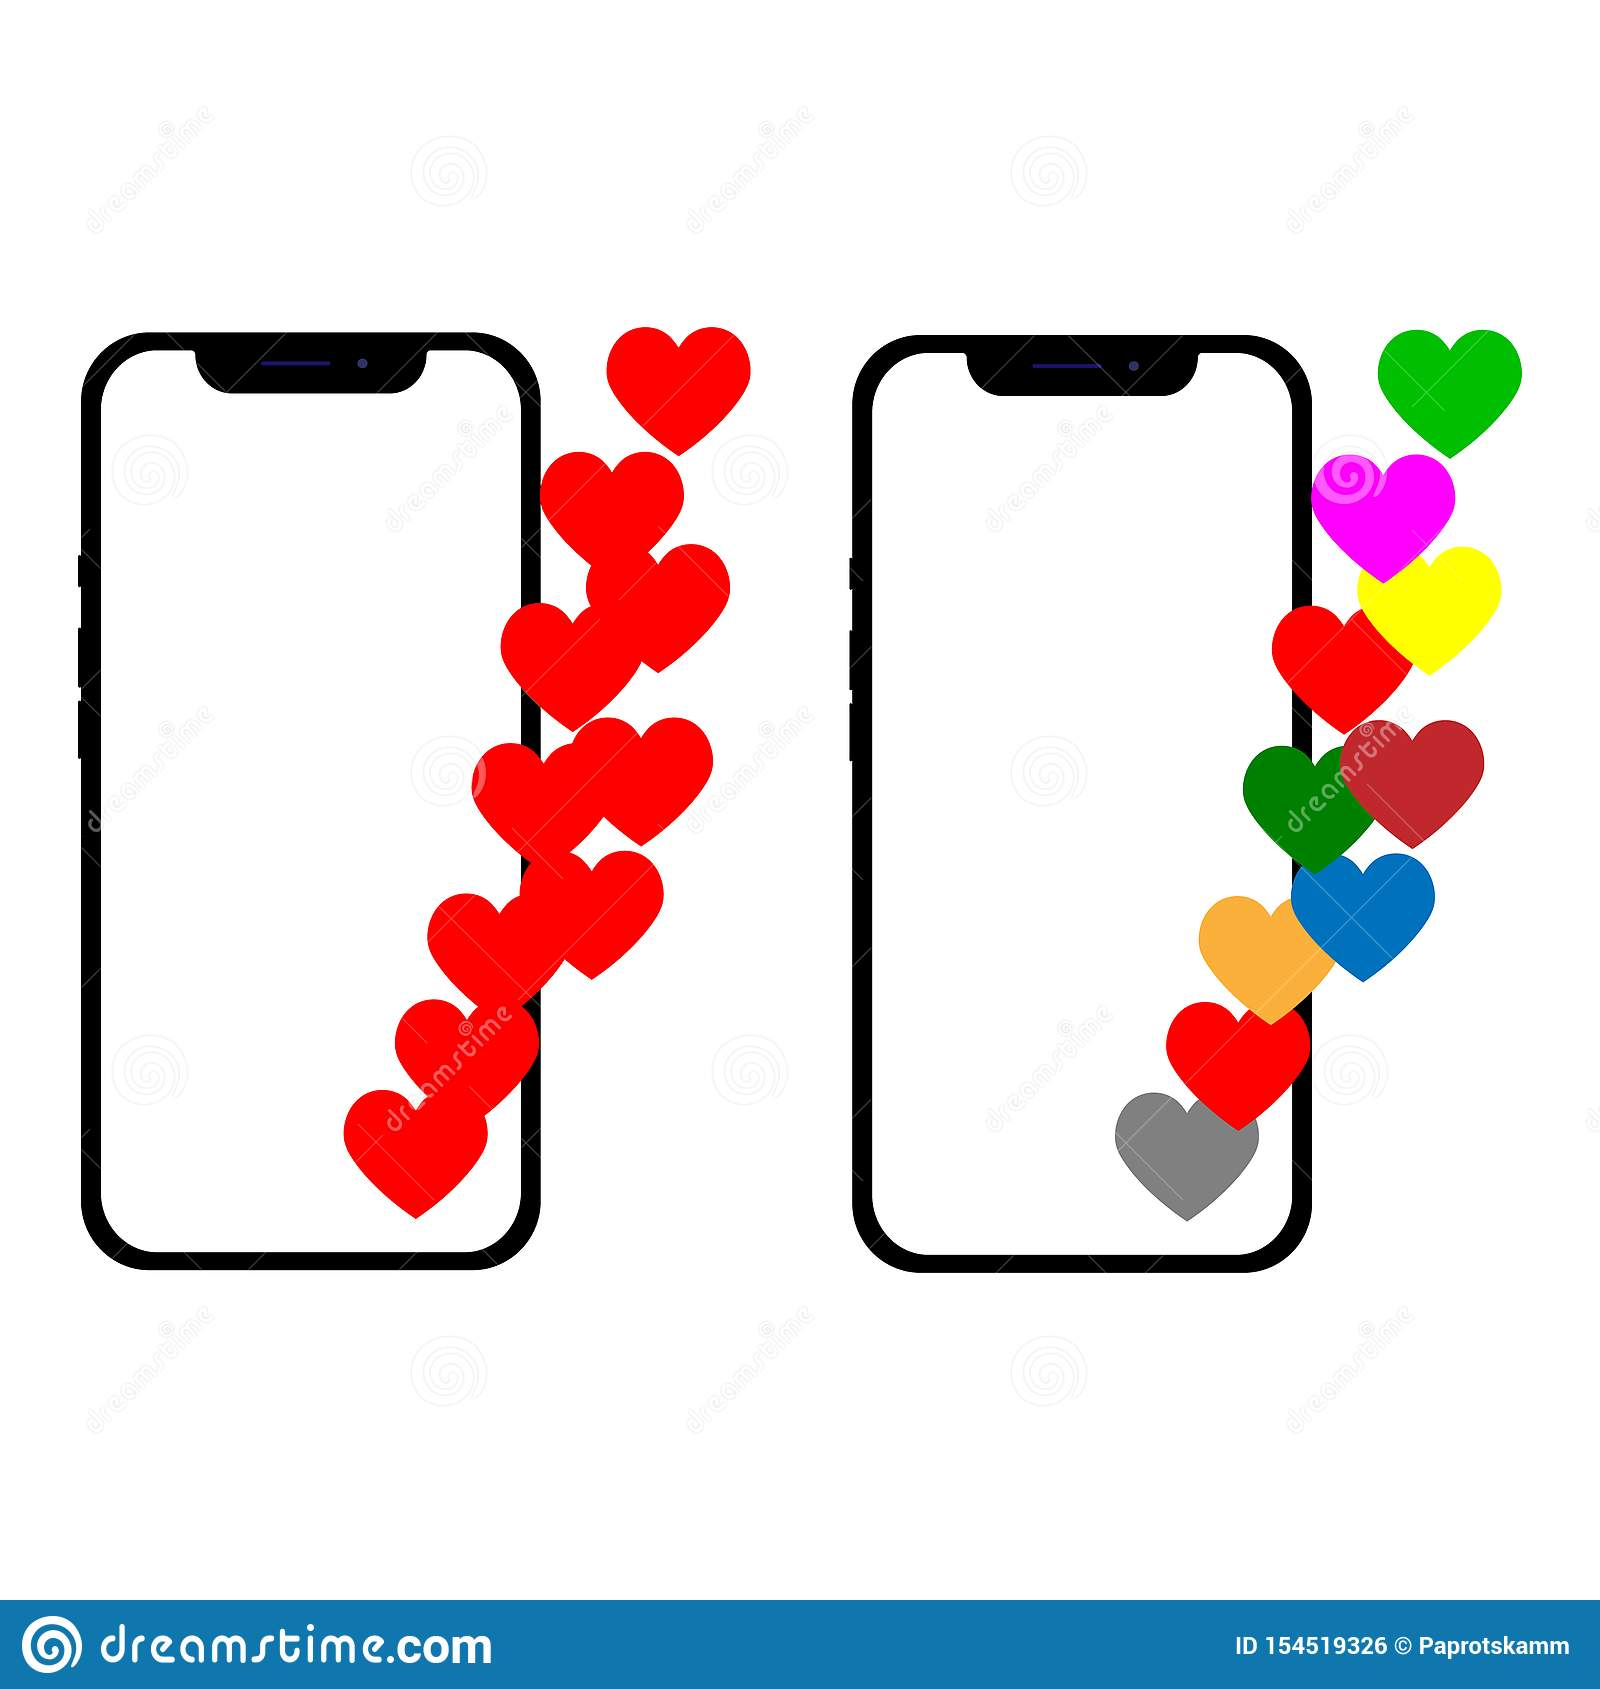 Vector illustration with a heart, emoji a message on the screen. Social network and mobile device concept. Graphic for